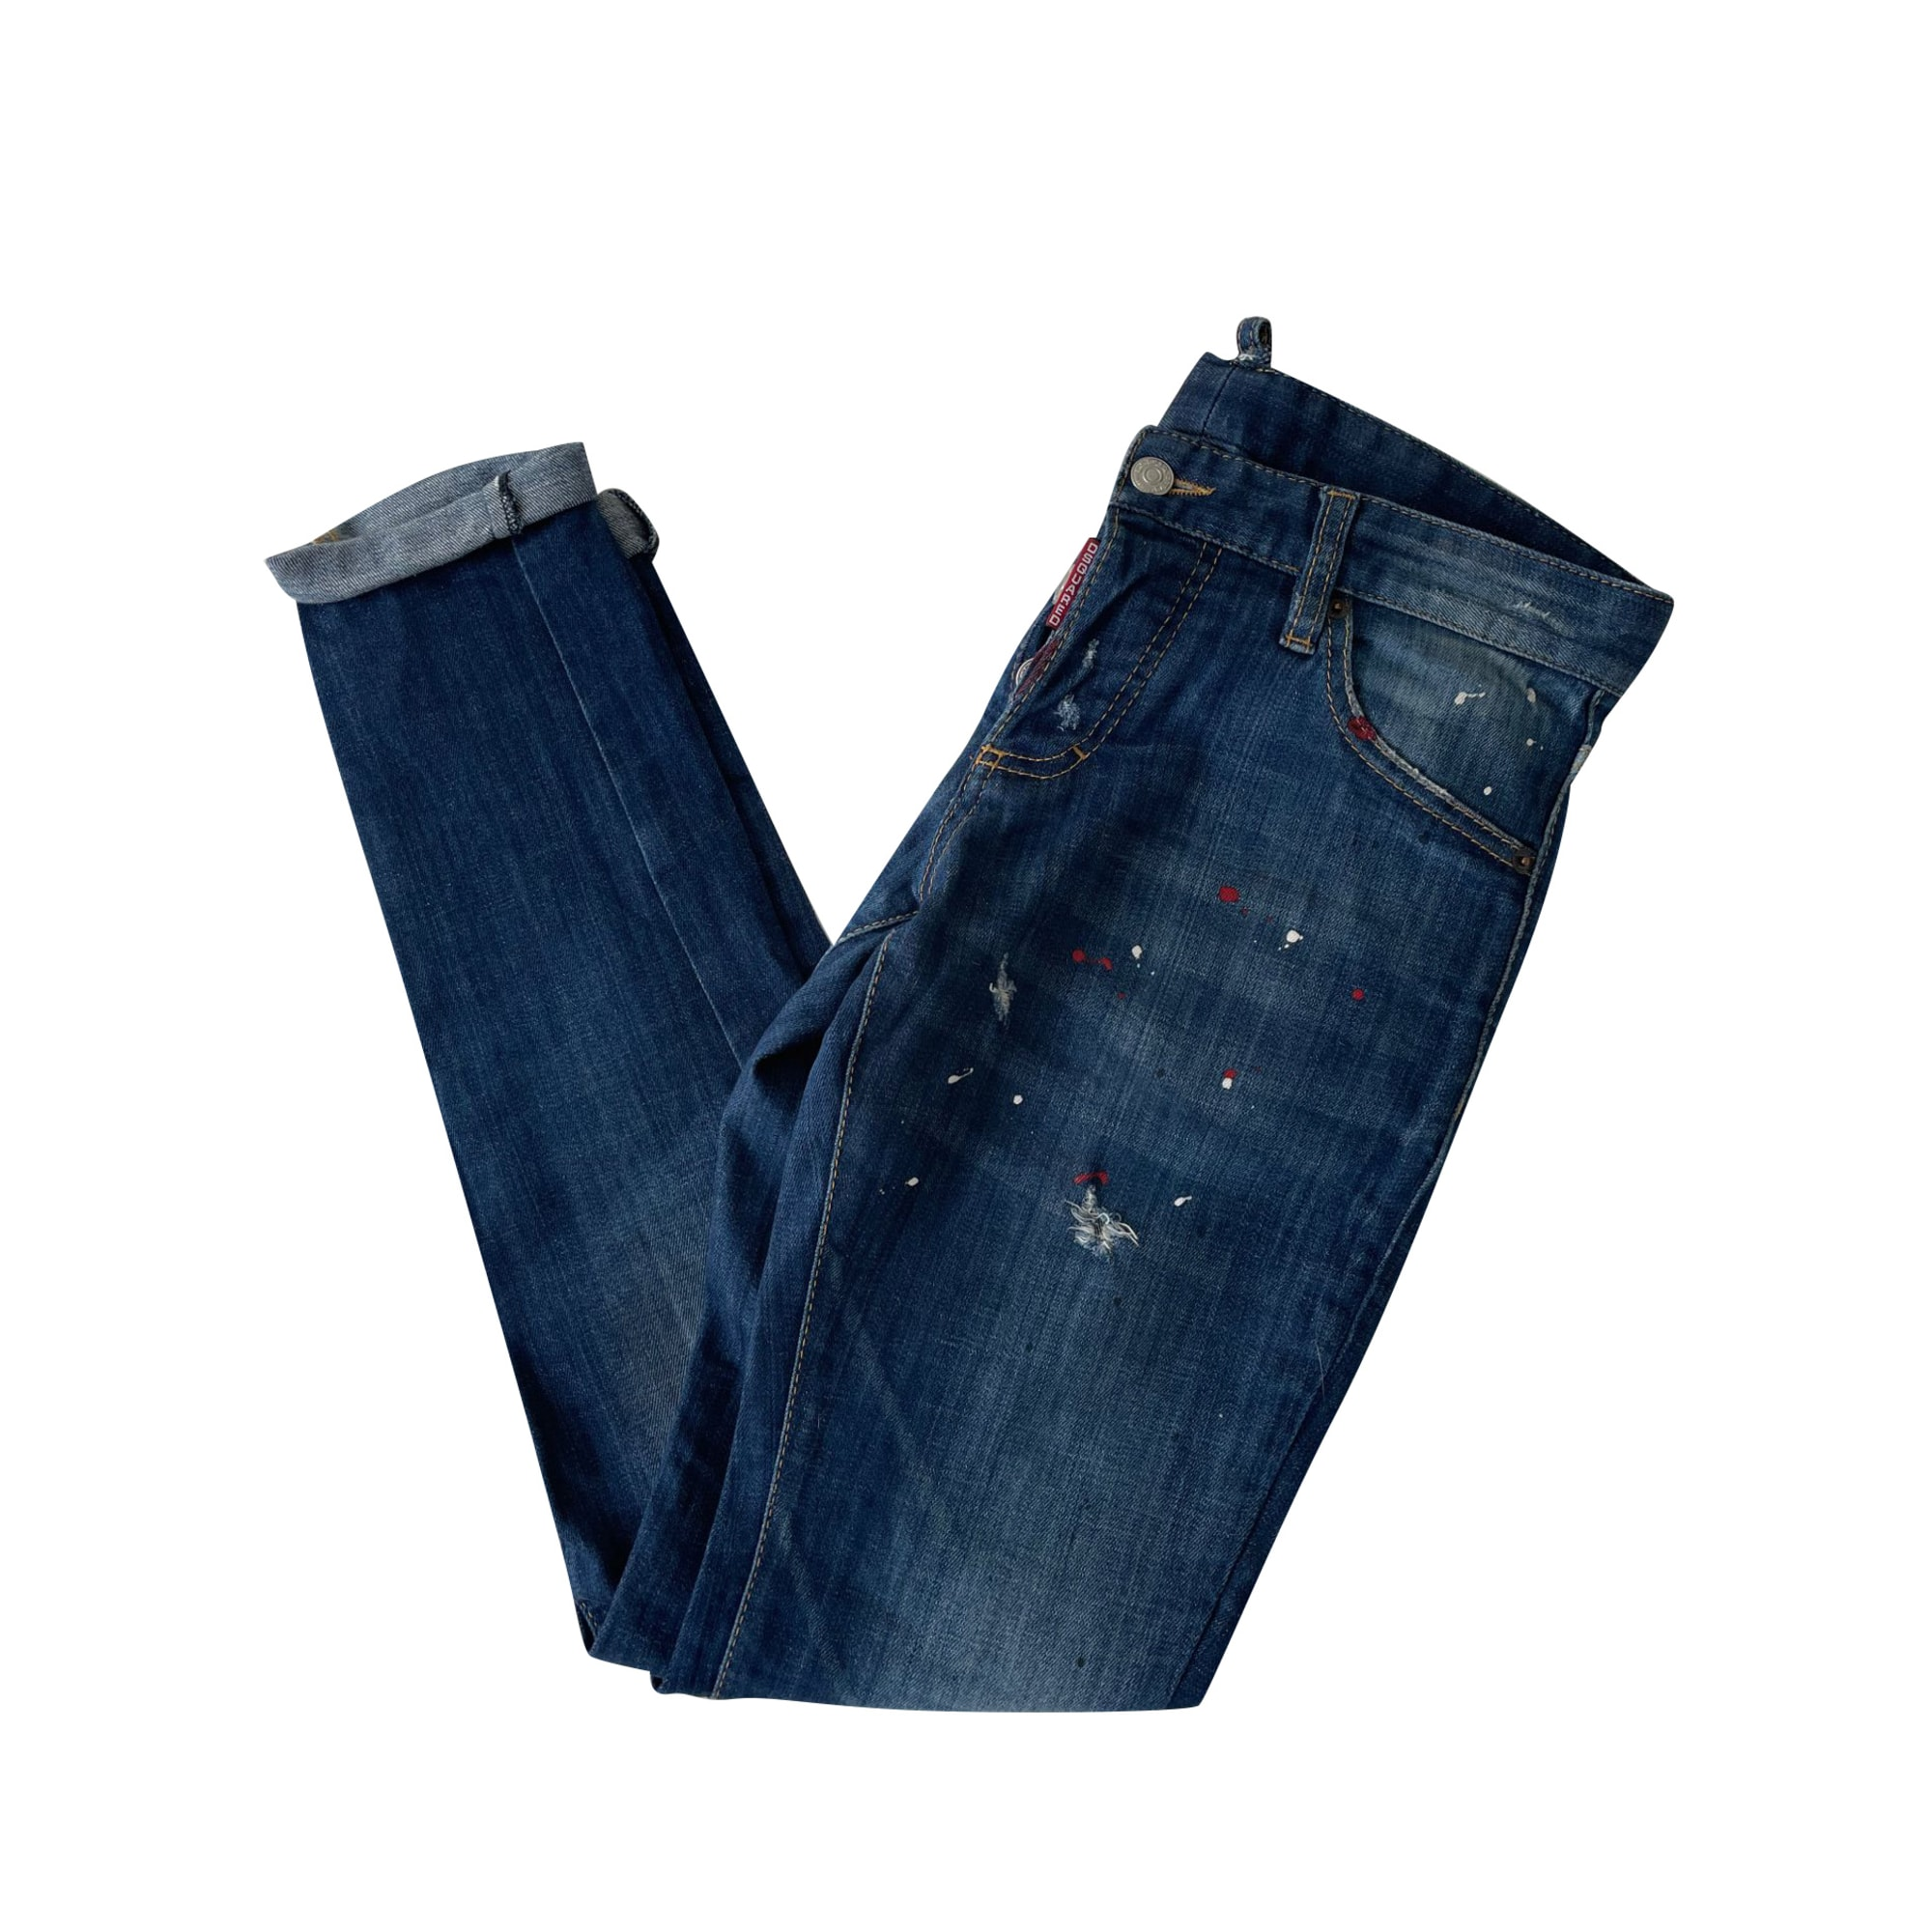 Skinny Jeans DSQUARED2 Blue, navy, turquoise